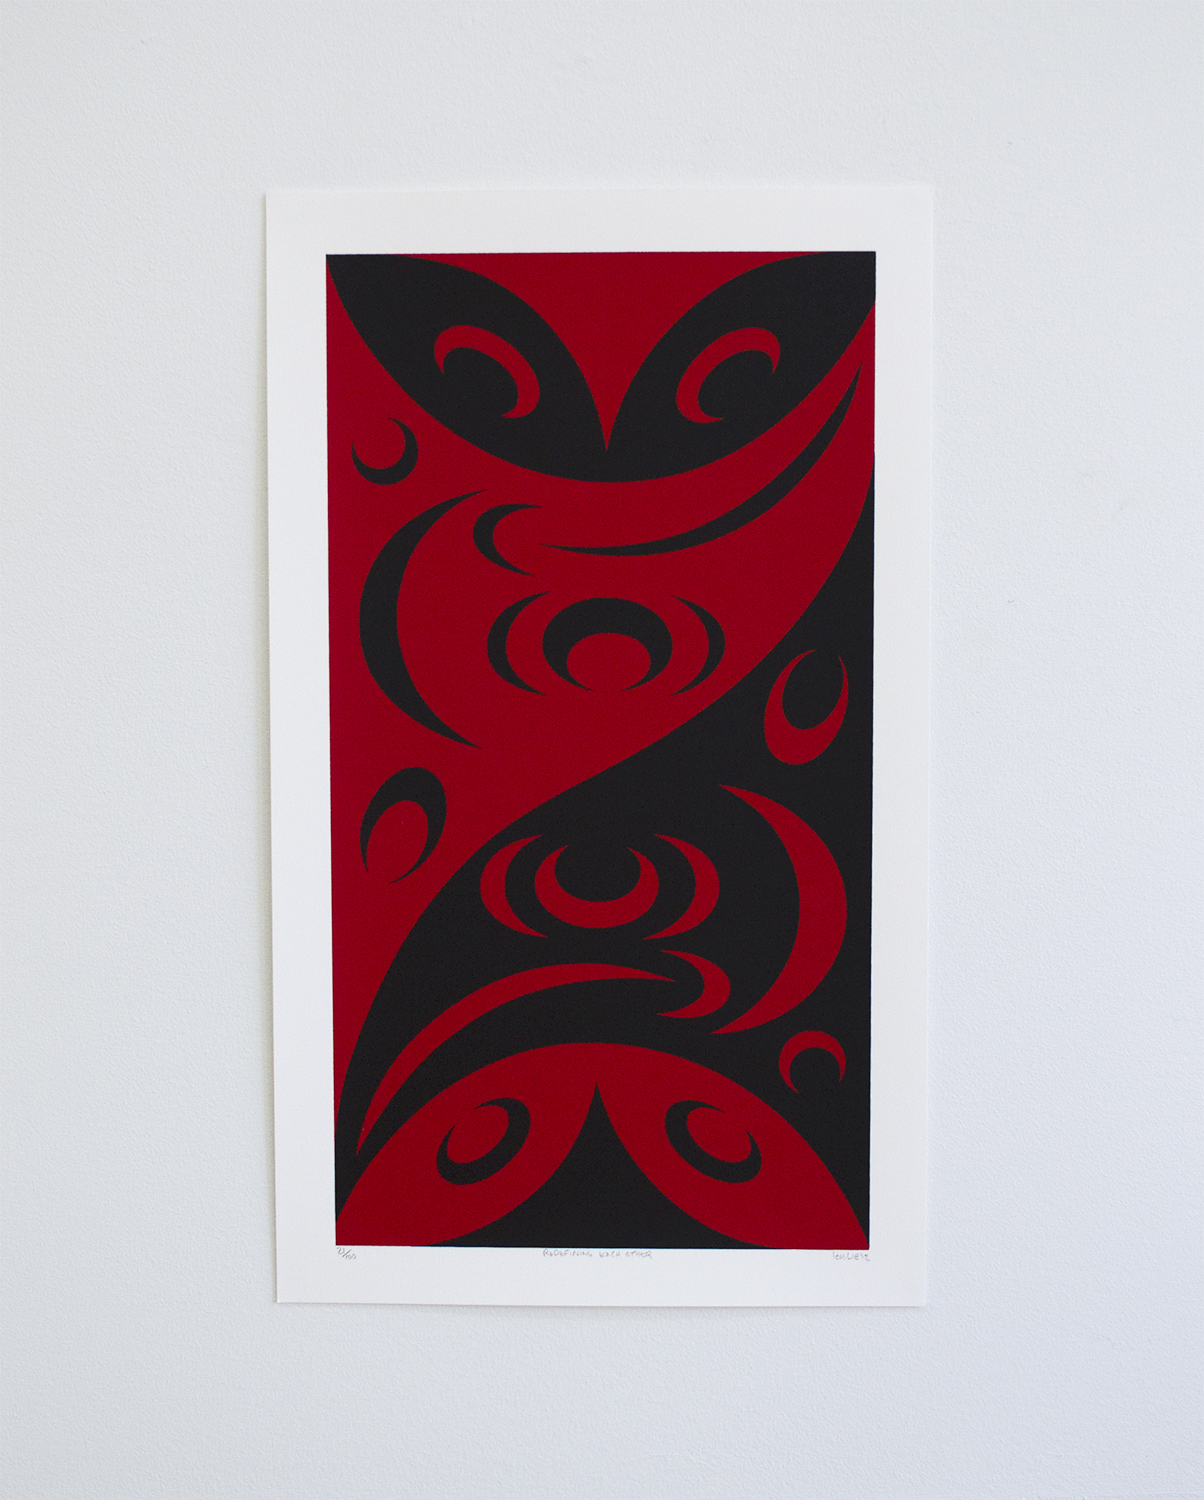 "Redefining Each Other, 2012, lessLIE (Salish), Serigraph ed/100, 19"" x 11.5"", $300"